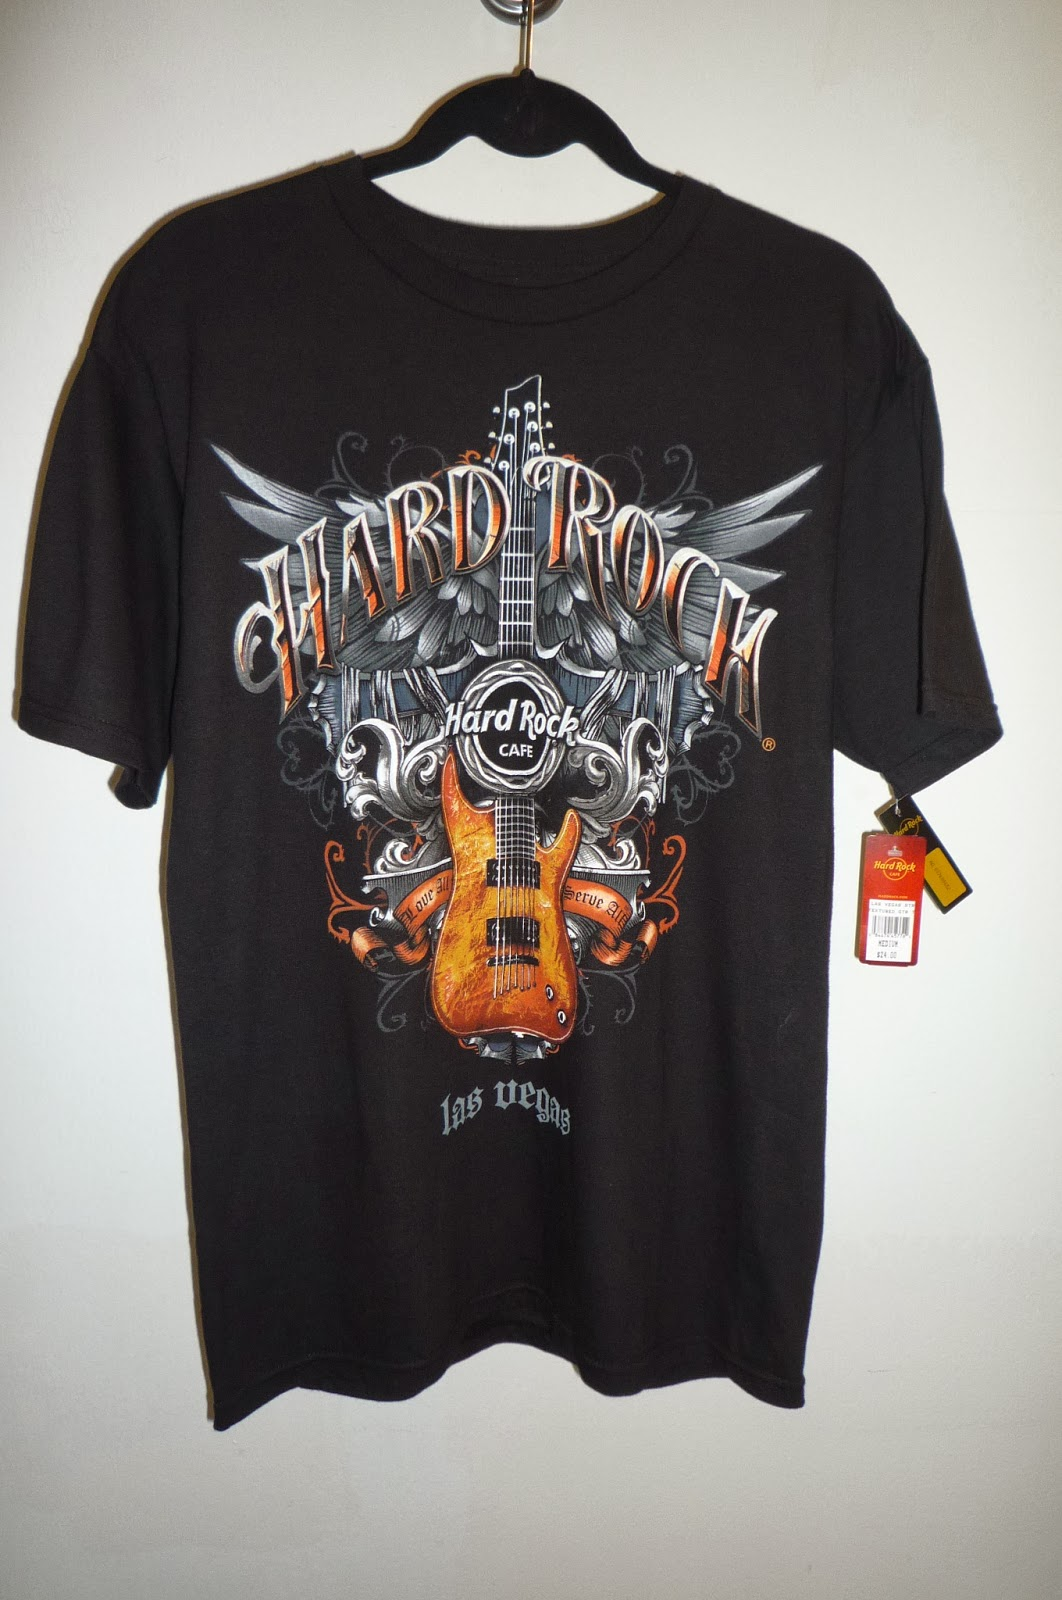 busybeeroom welcomes you hard rock cafe las vegas t shirt. Black Bedroom Furniture Sets. Home Design Ideas